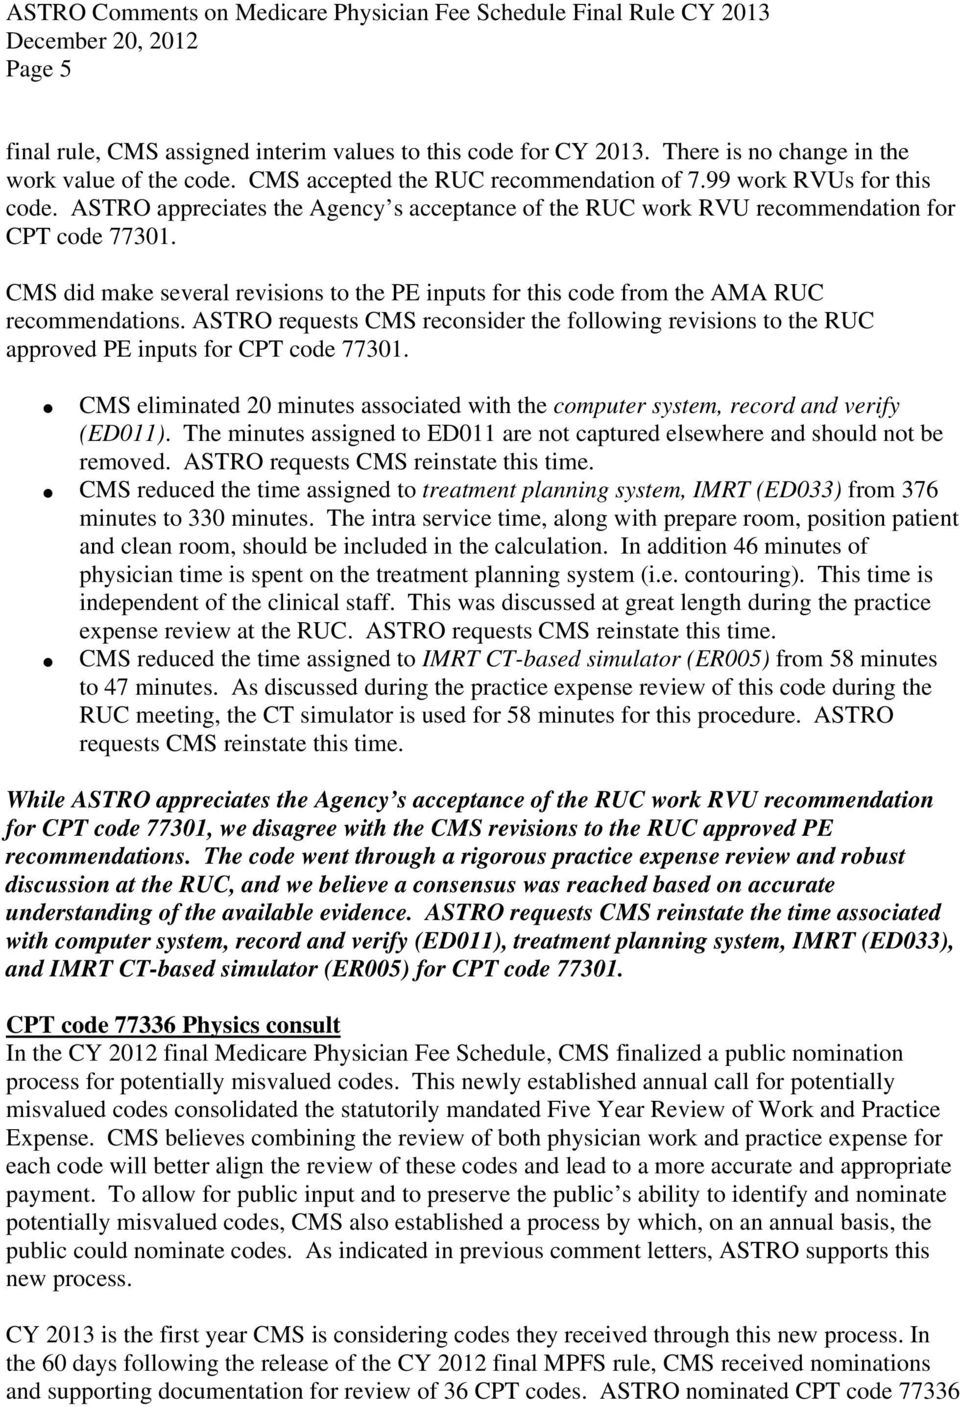 ASTRO requests CMS reconsider the following revisions to the RUC approved PE inputs for CPT code 77301. CMS eliminated 20 minutes associated with the computer system, record and verify (ED011).